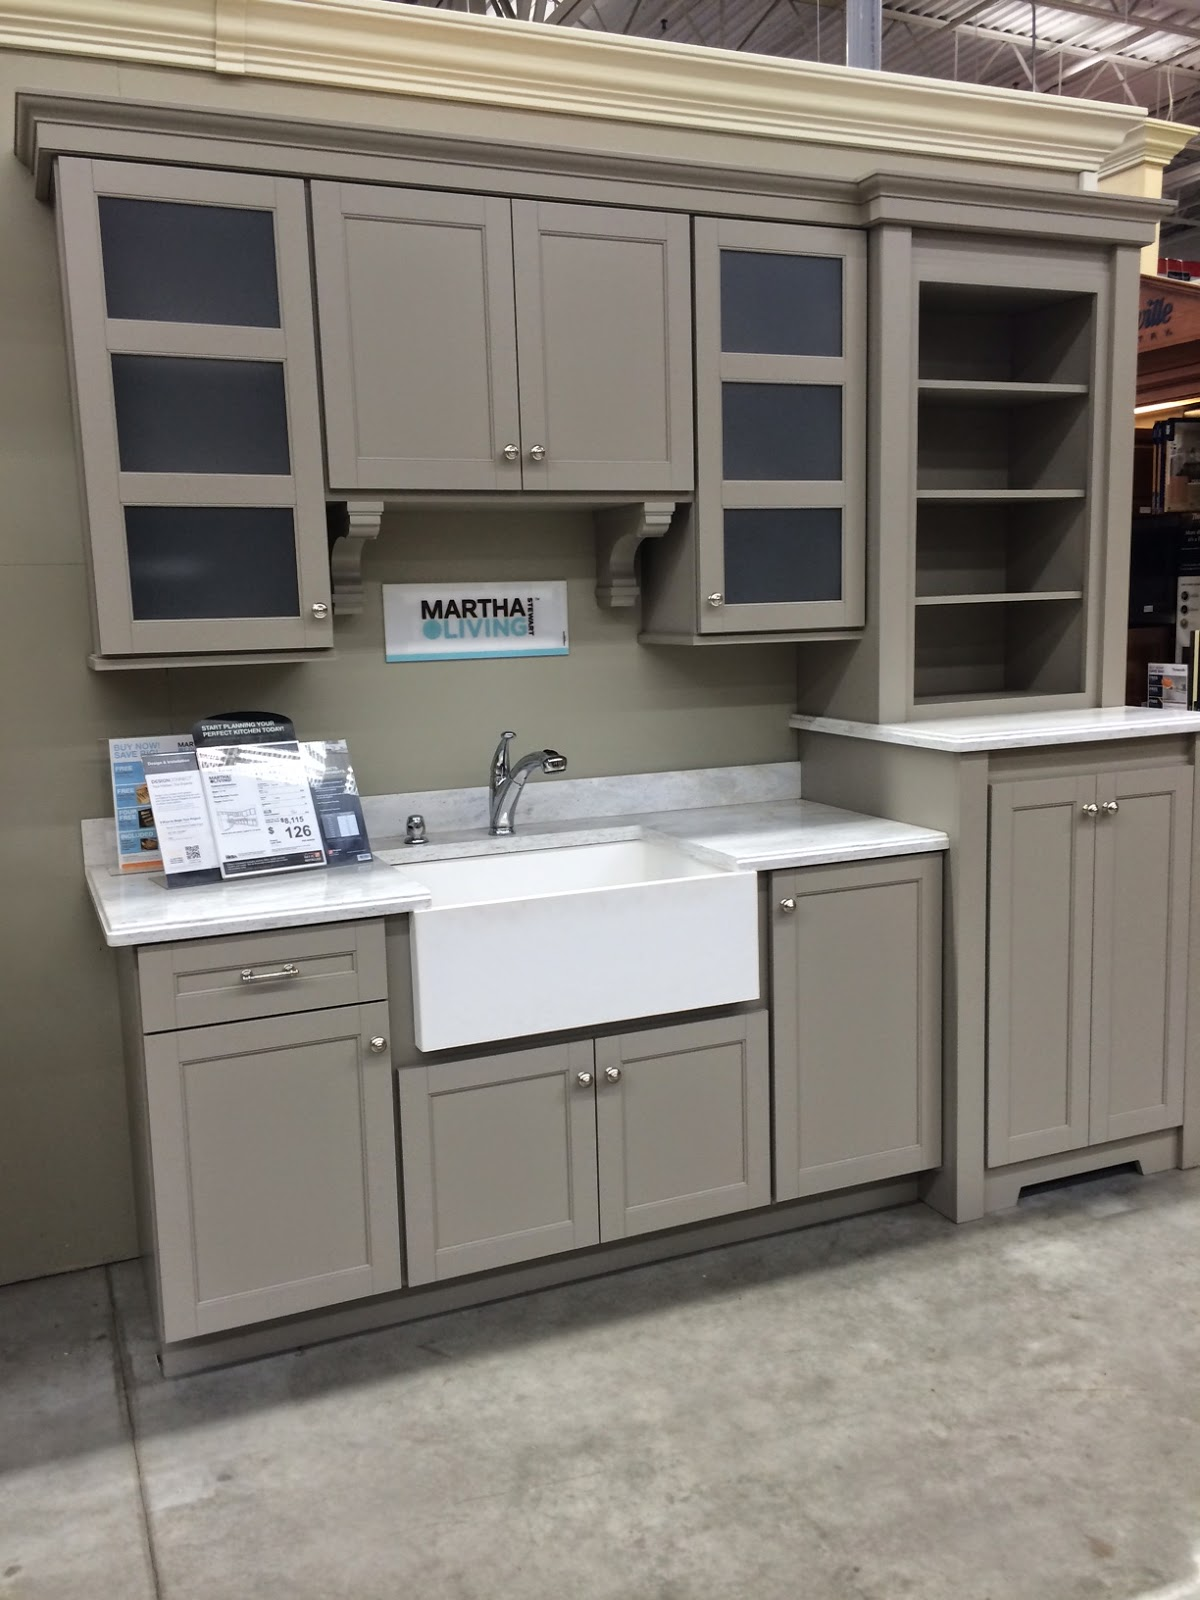 Kitchen Cabinets Home Depot Prices Beautiful Home Depot Cabinet Paint Kit Insured By Ross